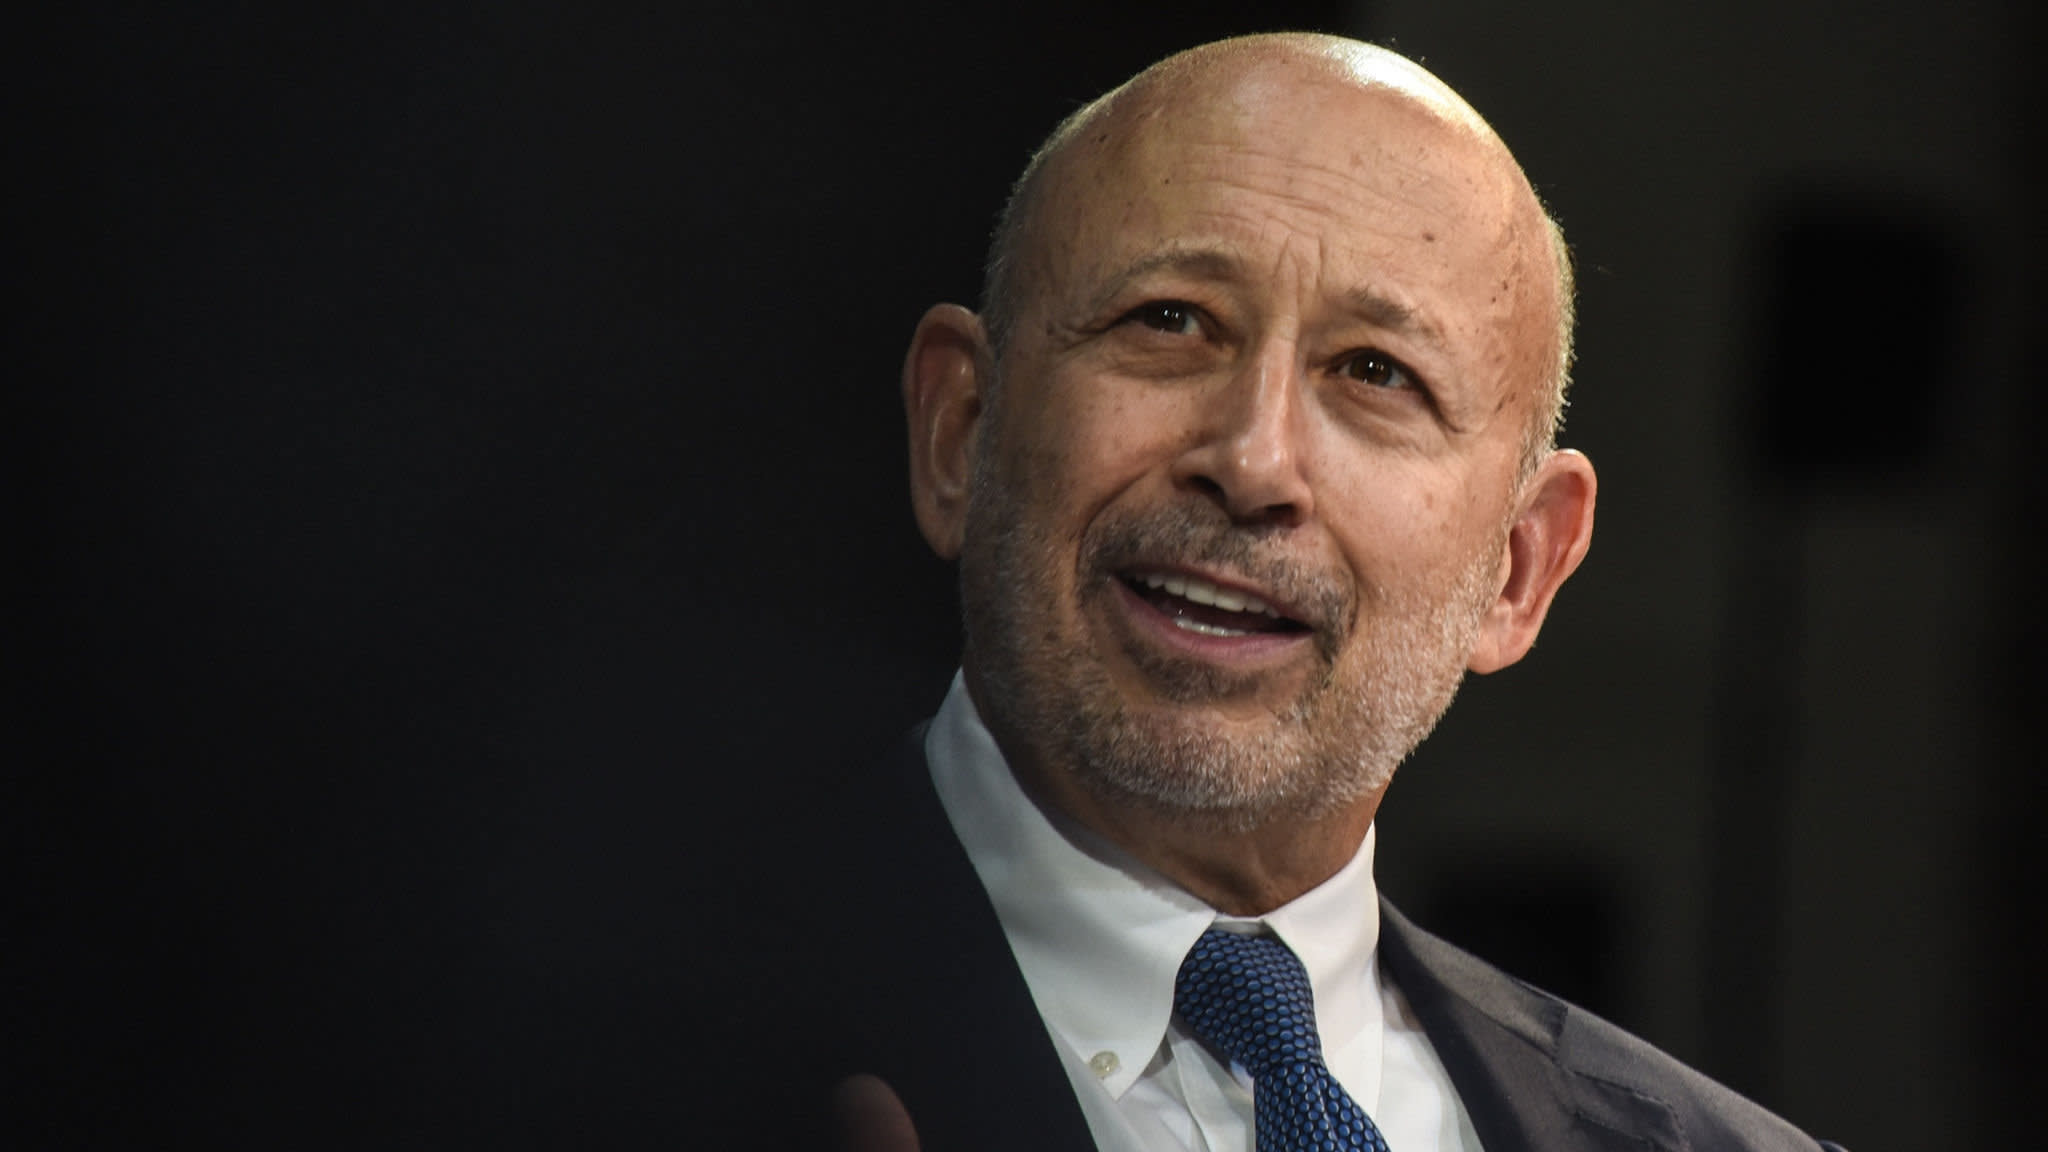 Goldman Sach's Lloyd Blankfein met 1MDB's Jho Low in 2012